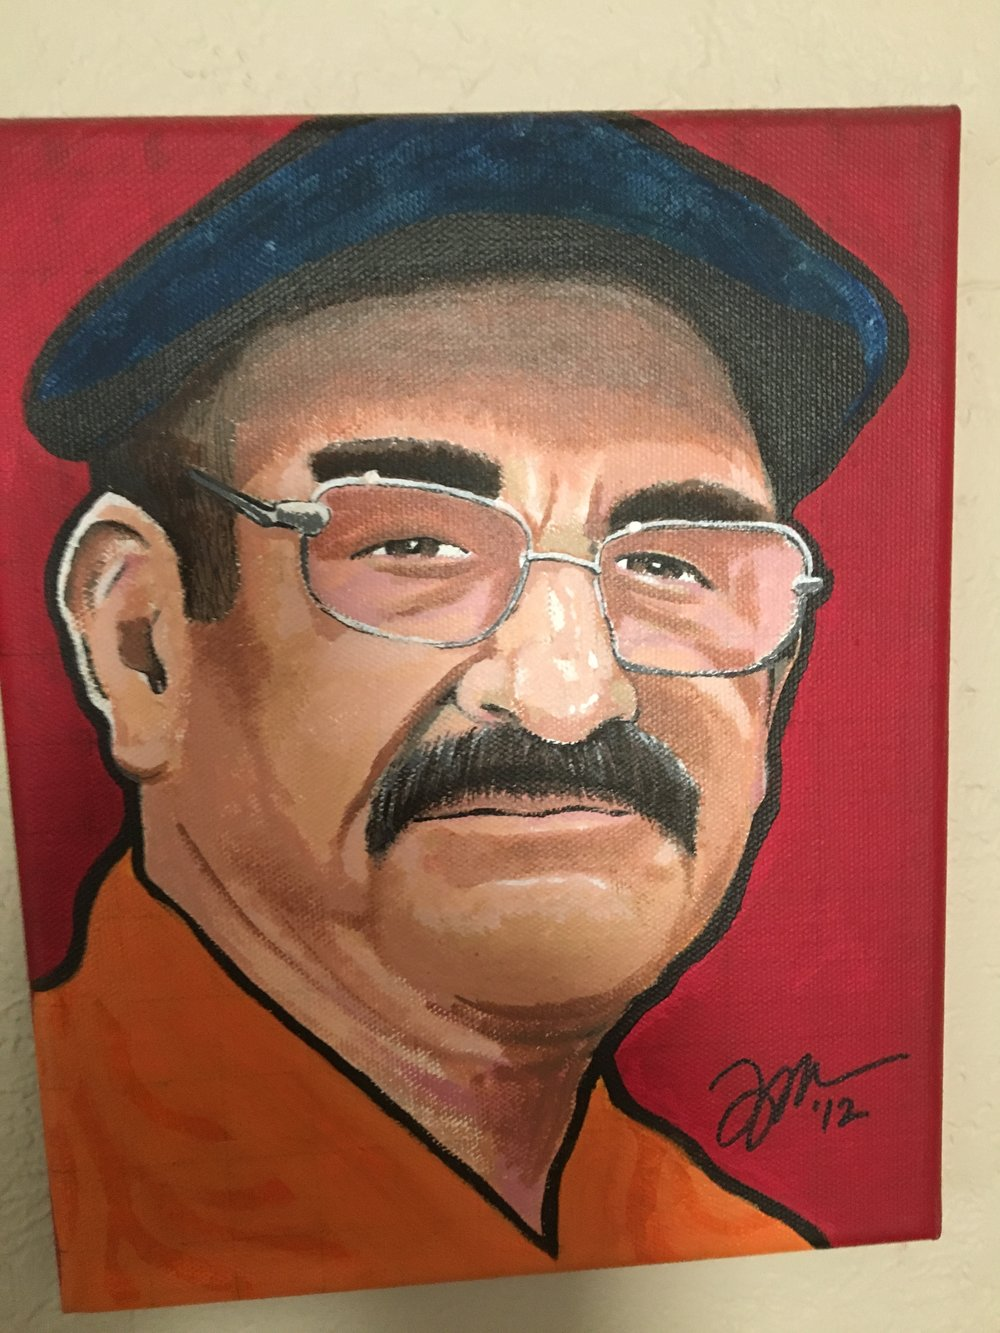 "Zamora, Gil. Chente with cap. 2012. Arylic on canvas, 8"" x 12"". Private collection."